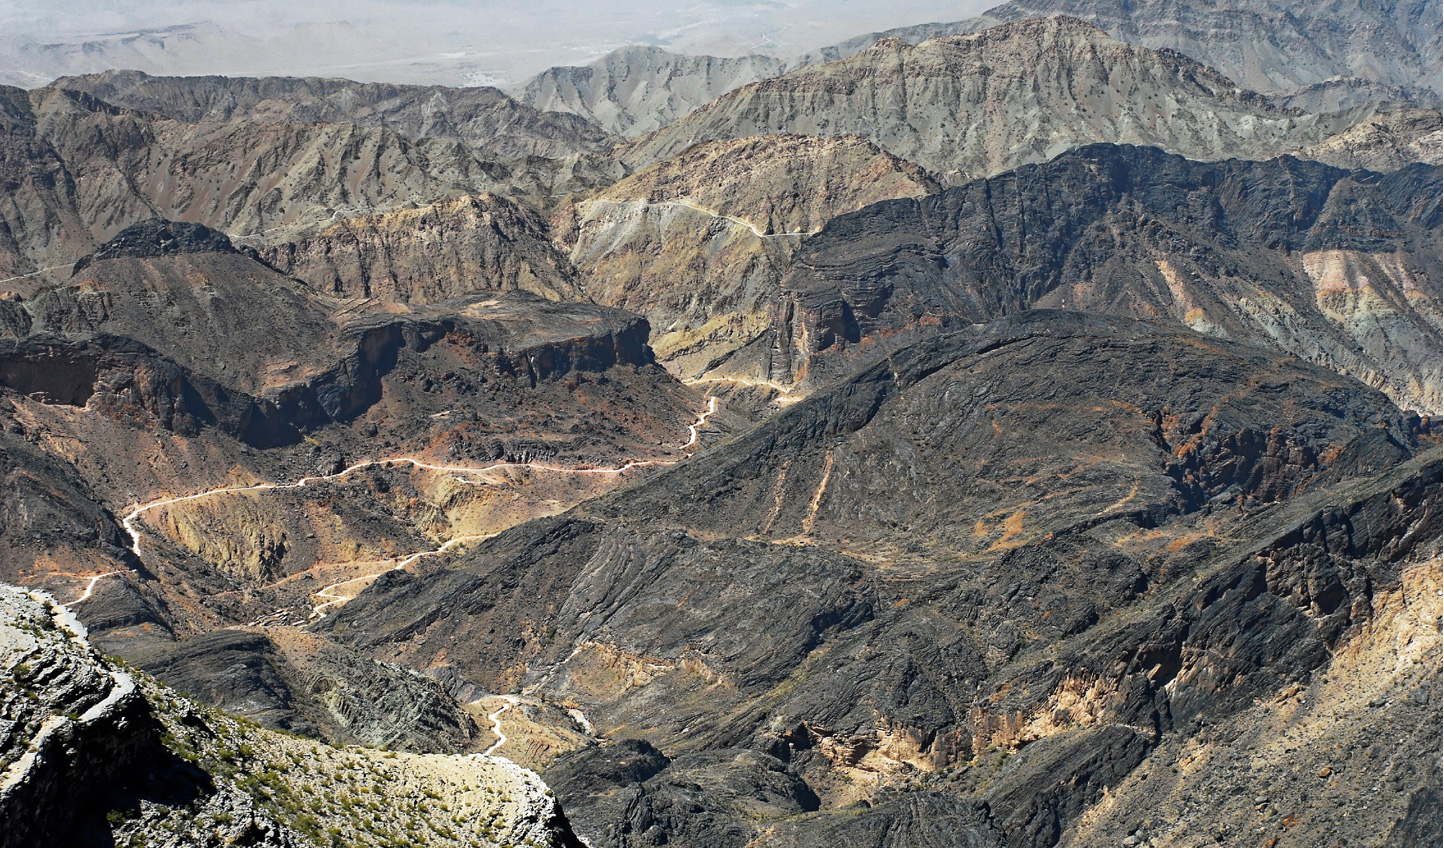 Oman's Wadi Ghul, or Grand Canyon should we say?